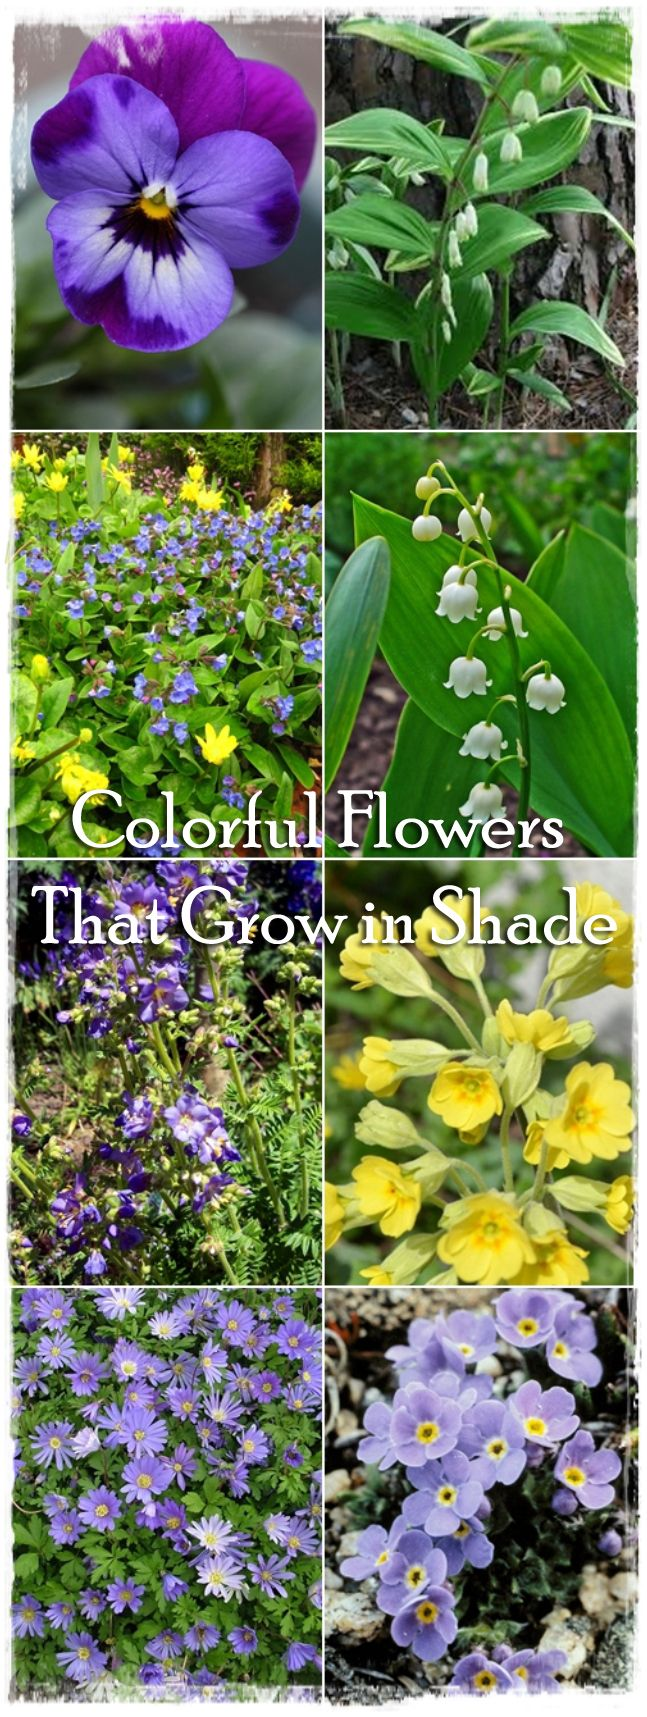 Colorful-Flowers-That-Grow-in-Shade